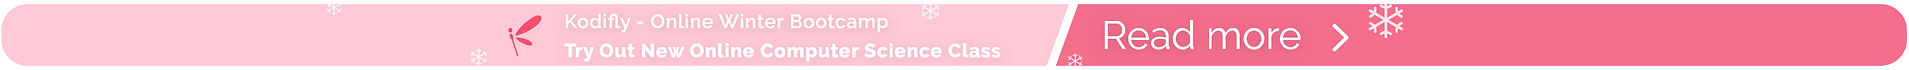 Winter bootcamp small banner.png